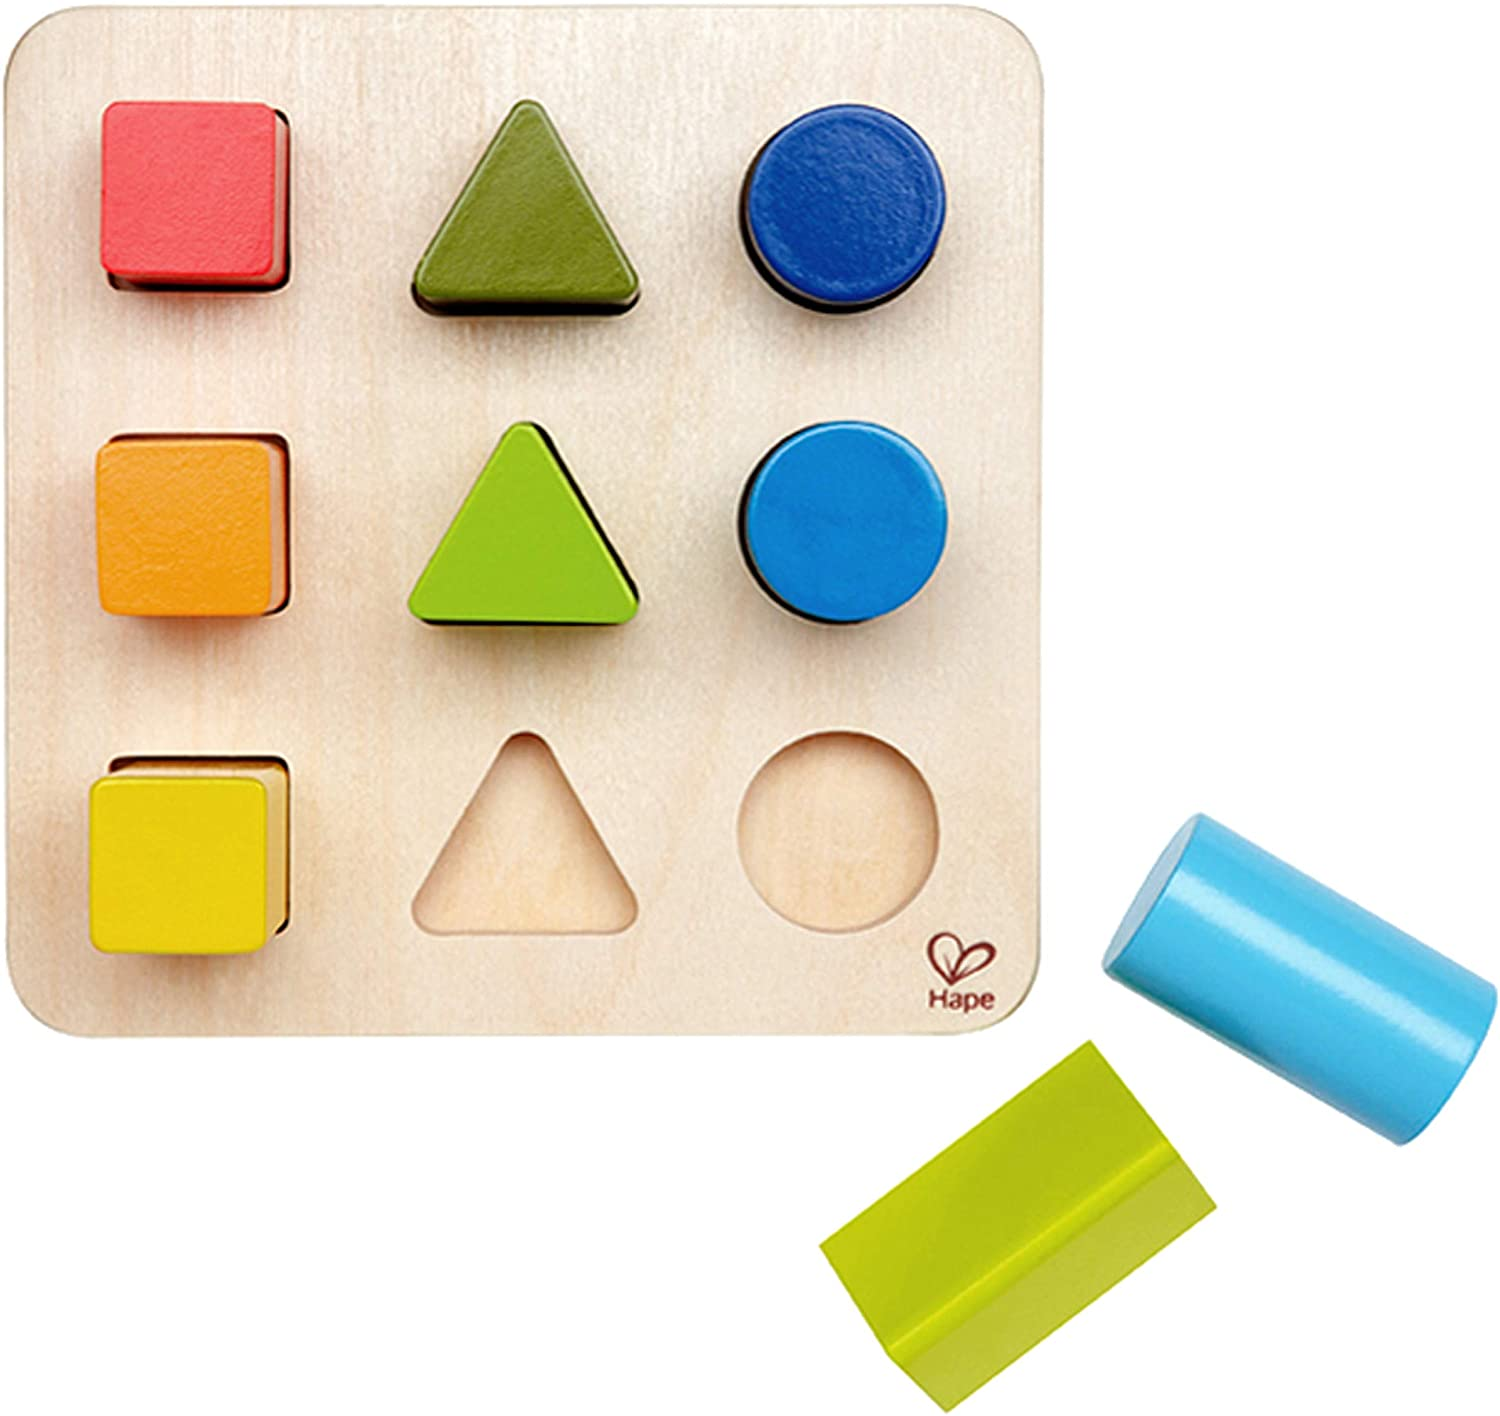 FirstShapes Learning Puzzle by Hape